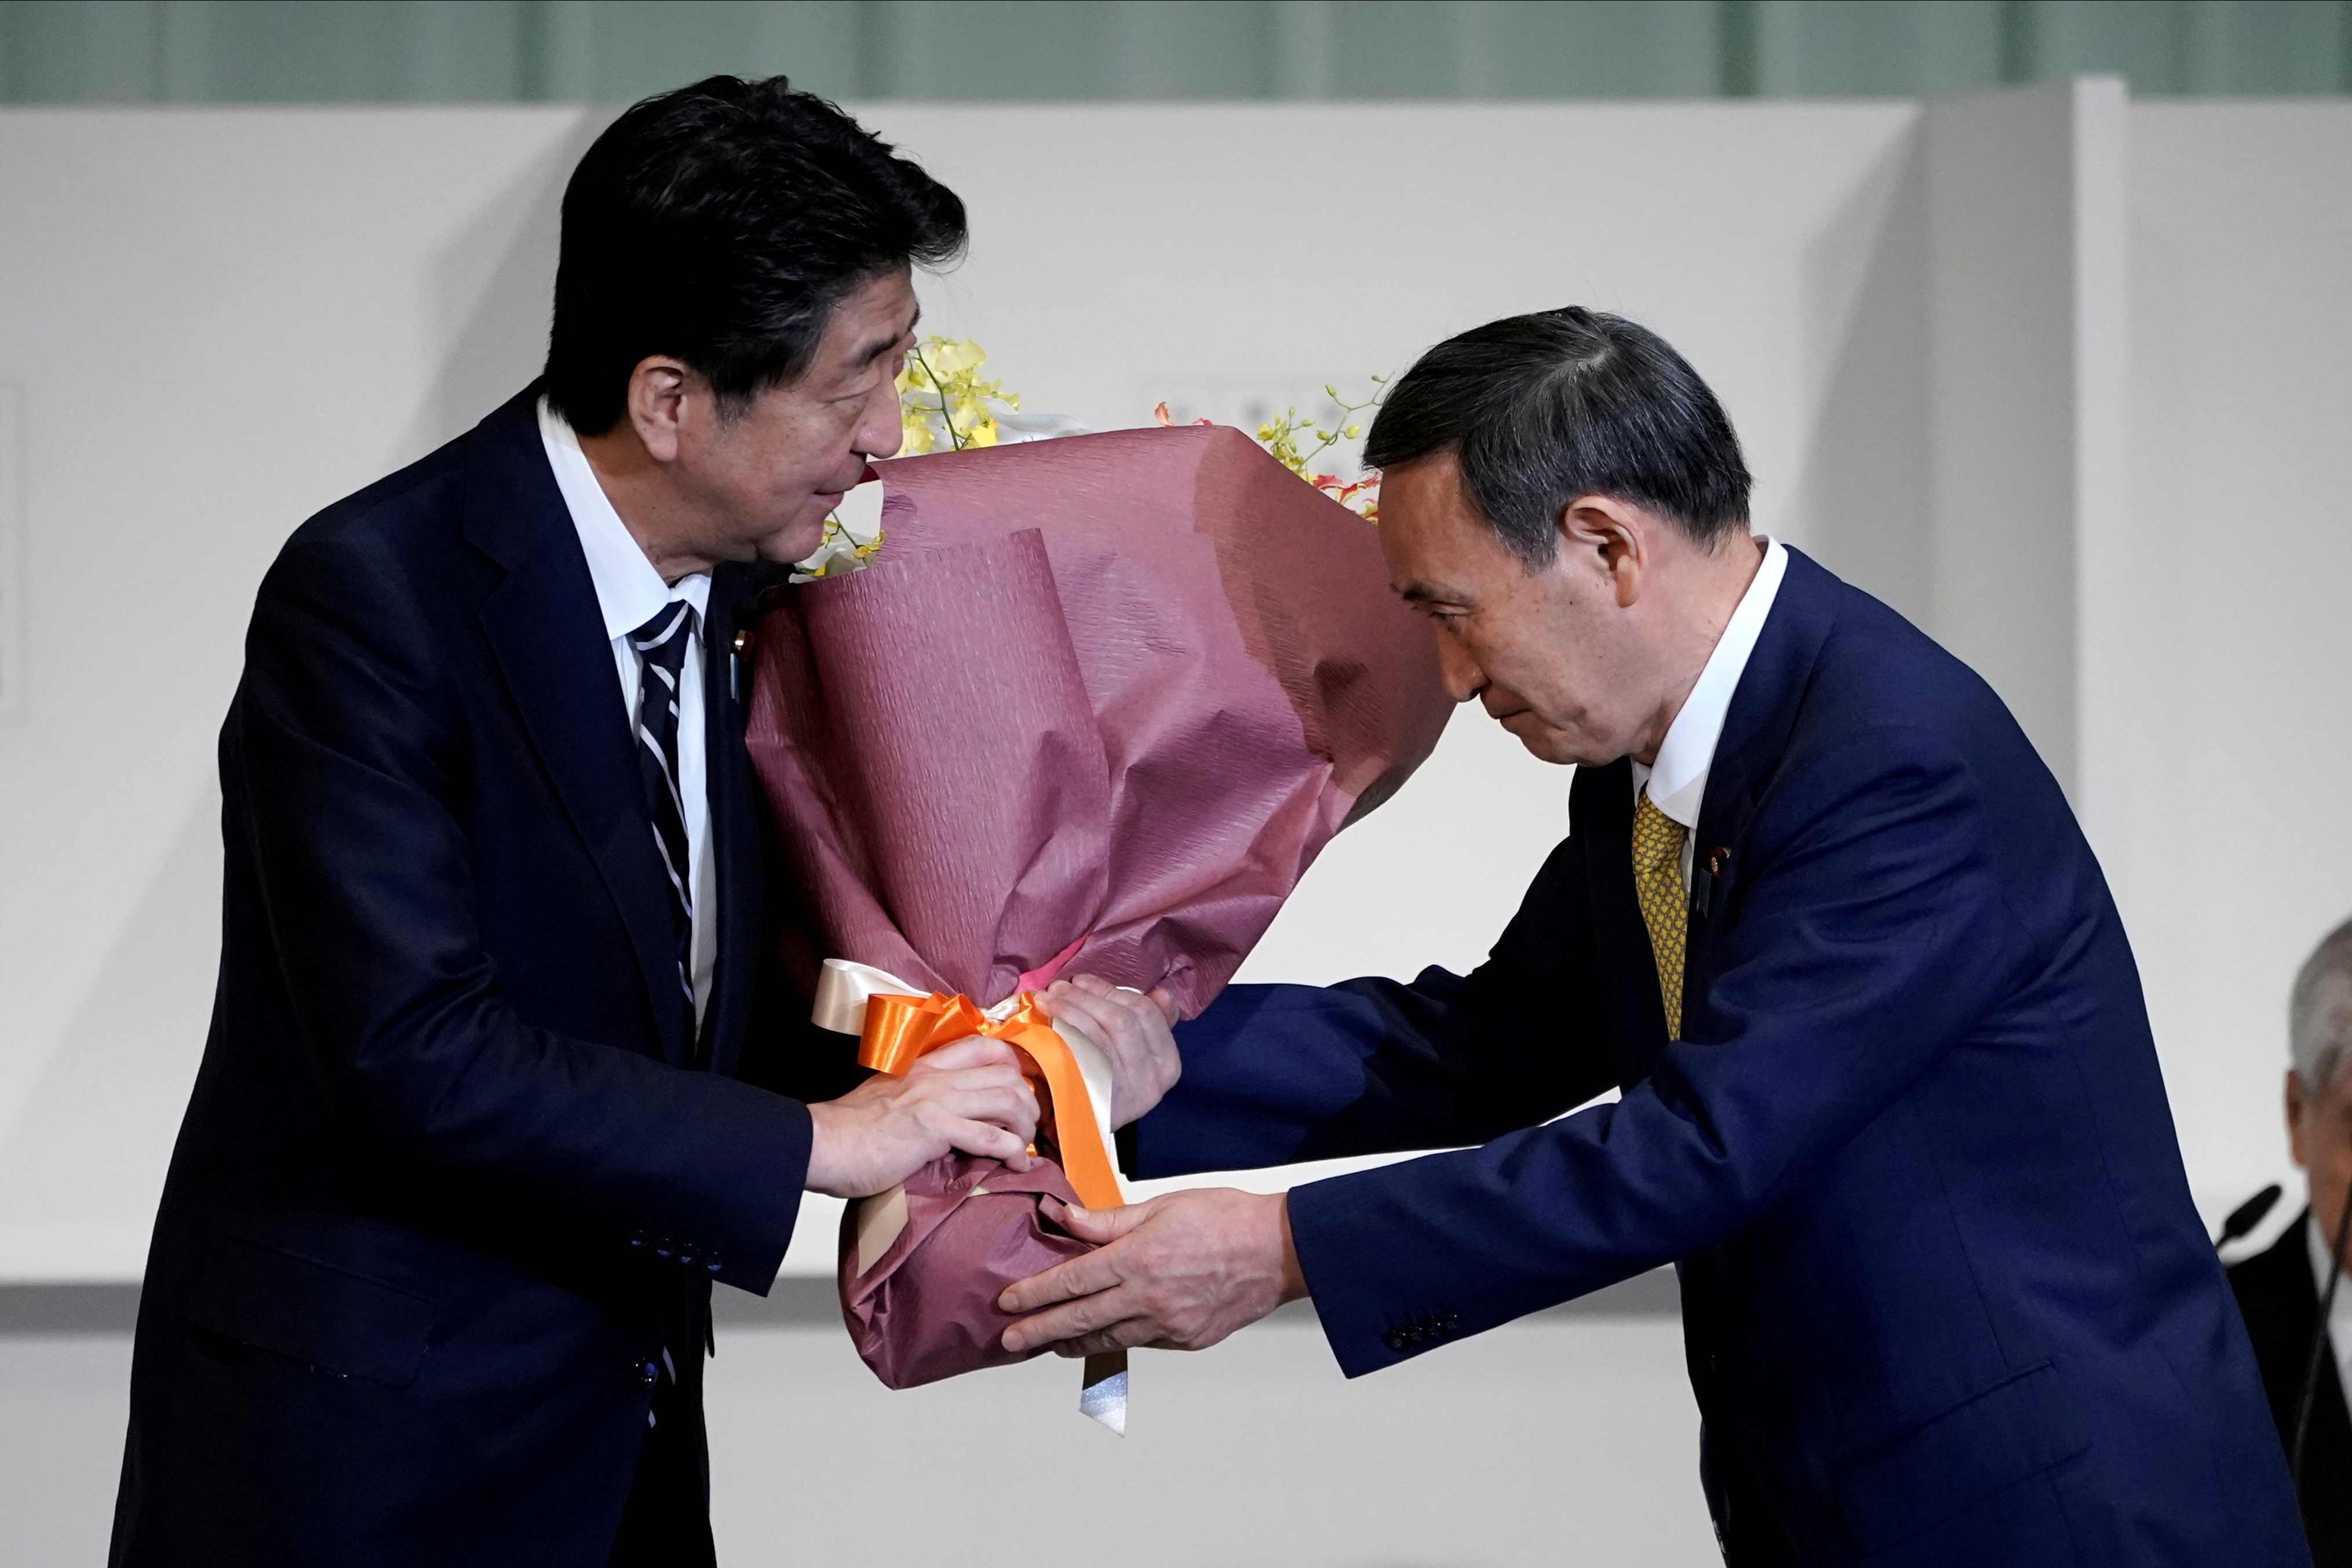 Japan's Chief Cabinet Secretary Yoshihide Suga presents Prime Minister Shinzo Abe with flowers after Suga was elected as new head of the ruling party at the Liberal Democratic Party's (LDP) leadership election in Tokyo, Japan September 14, 2020. Eugene Hoshiko/Pool via REUTERS REFILE - CORRECTING FLOWERS RECIPIENT